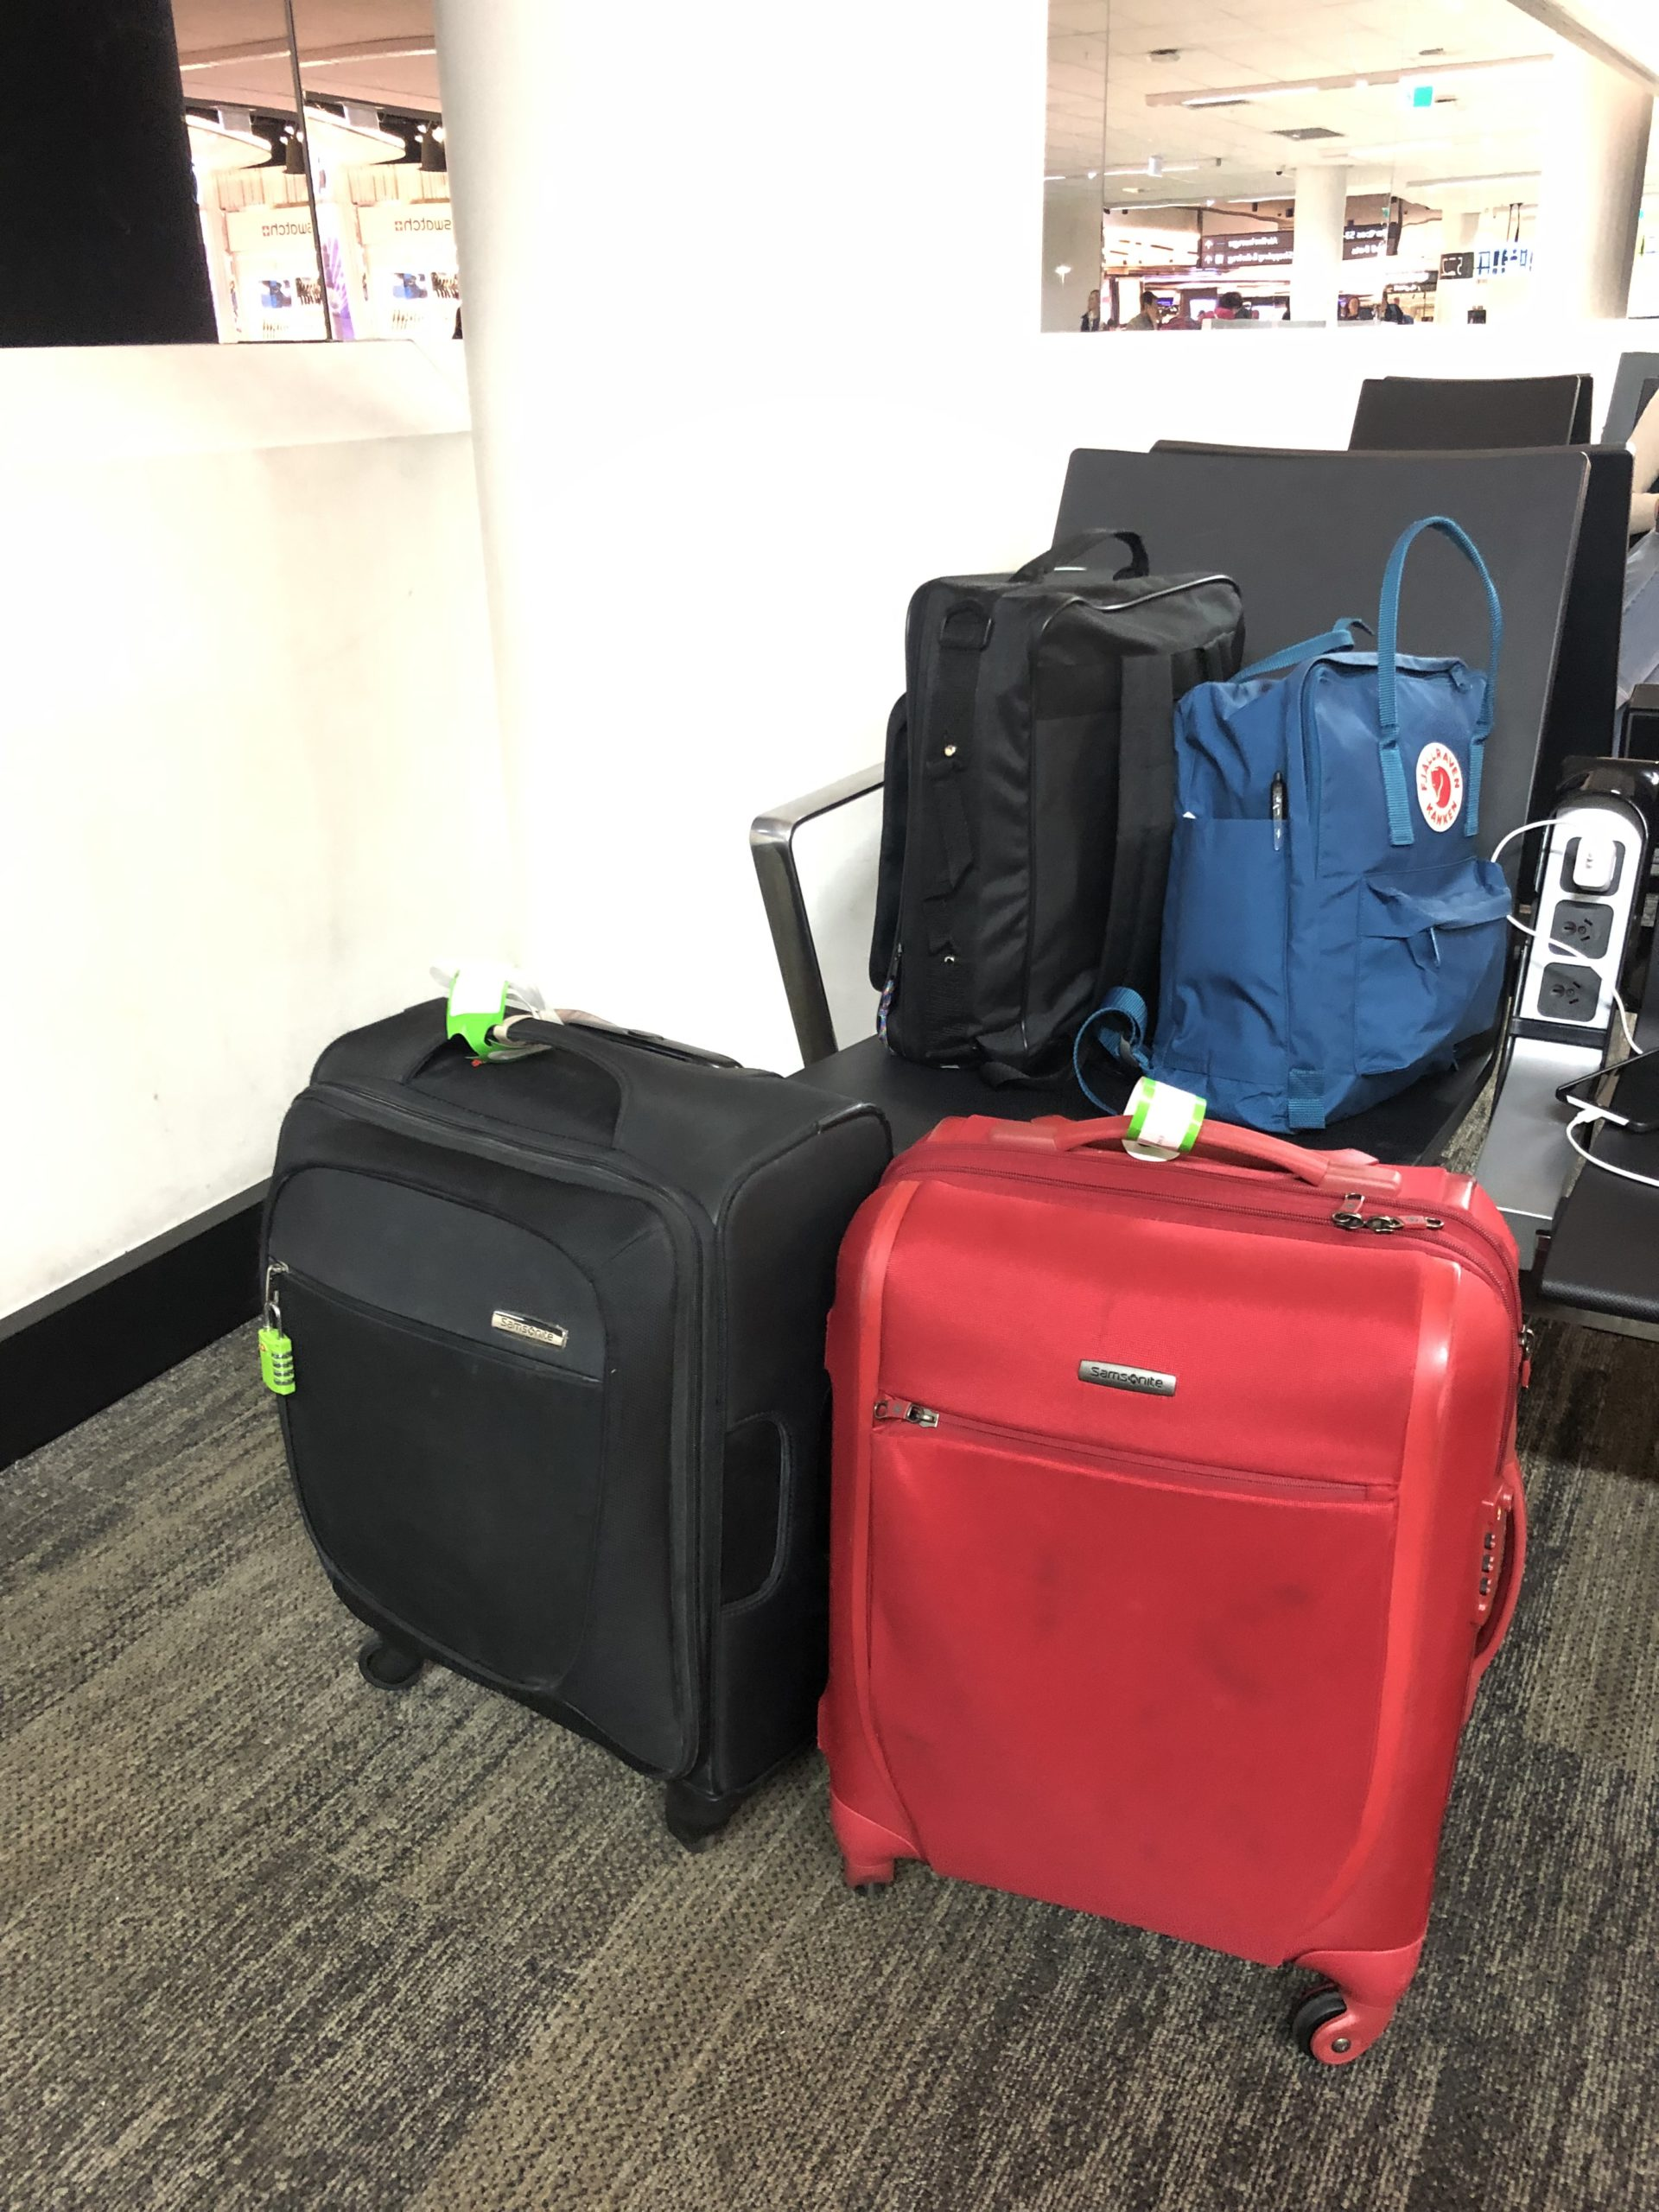 2 carry on sized suitcases and 2 backpacks